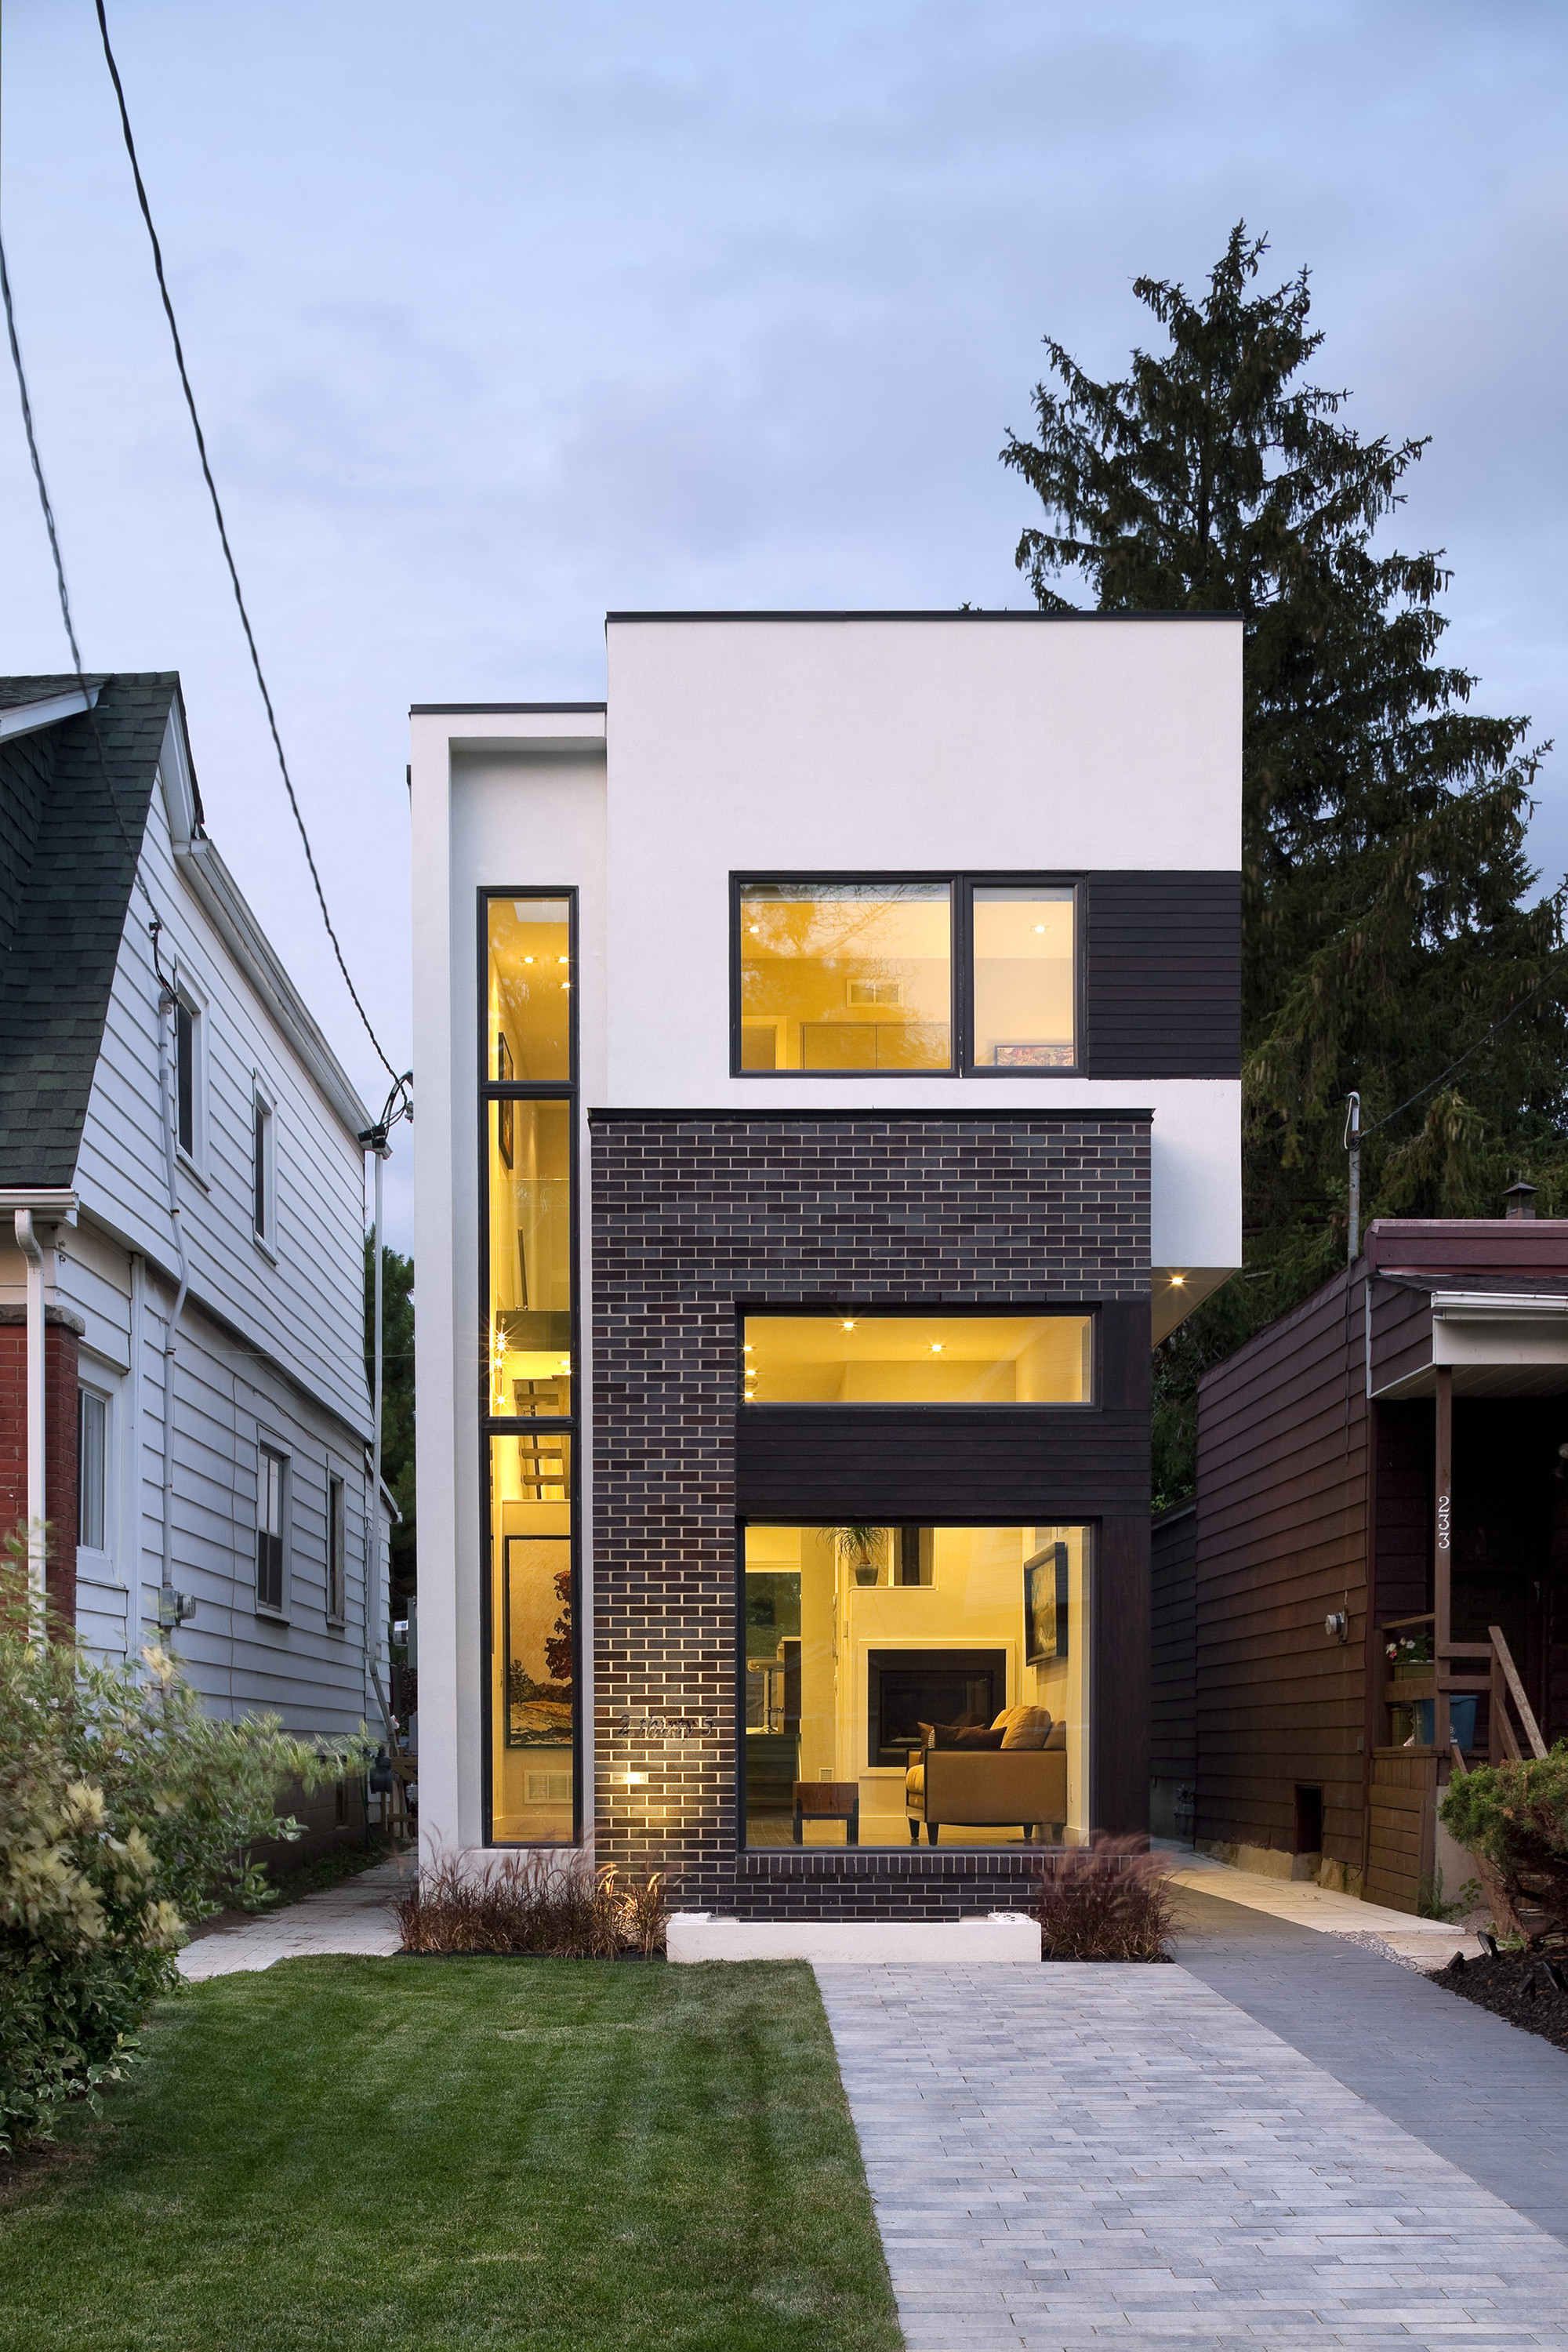 The Linear House Green Dot Architects ArchDaily